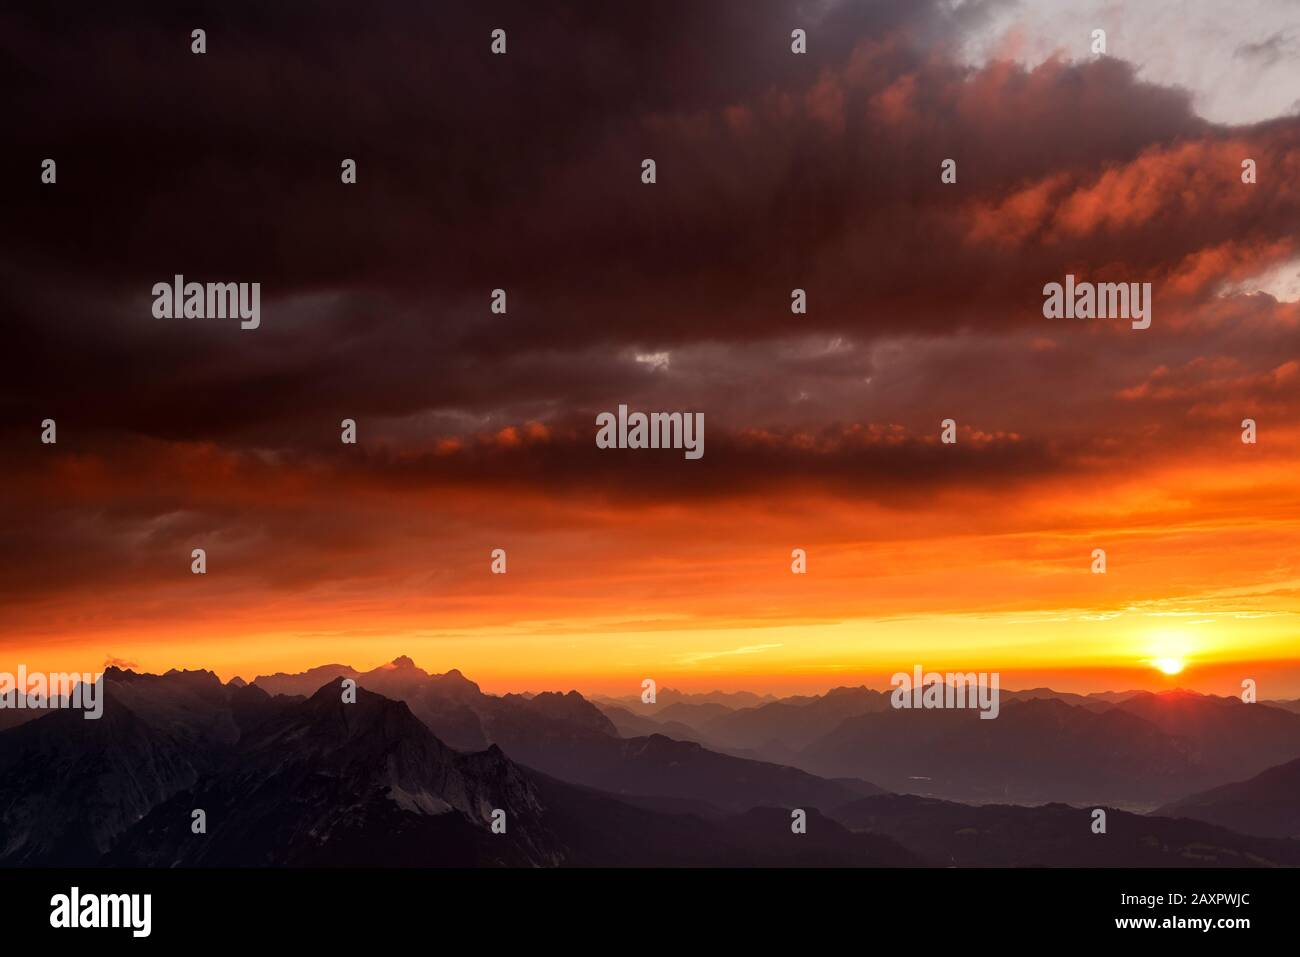 Sunset in the Werdenfelser Land with Zugspitze and Wetterstein mountains, as well as dramatic clouds Stock Photo